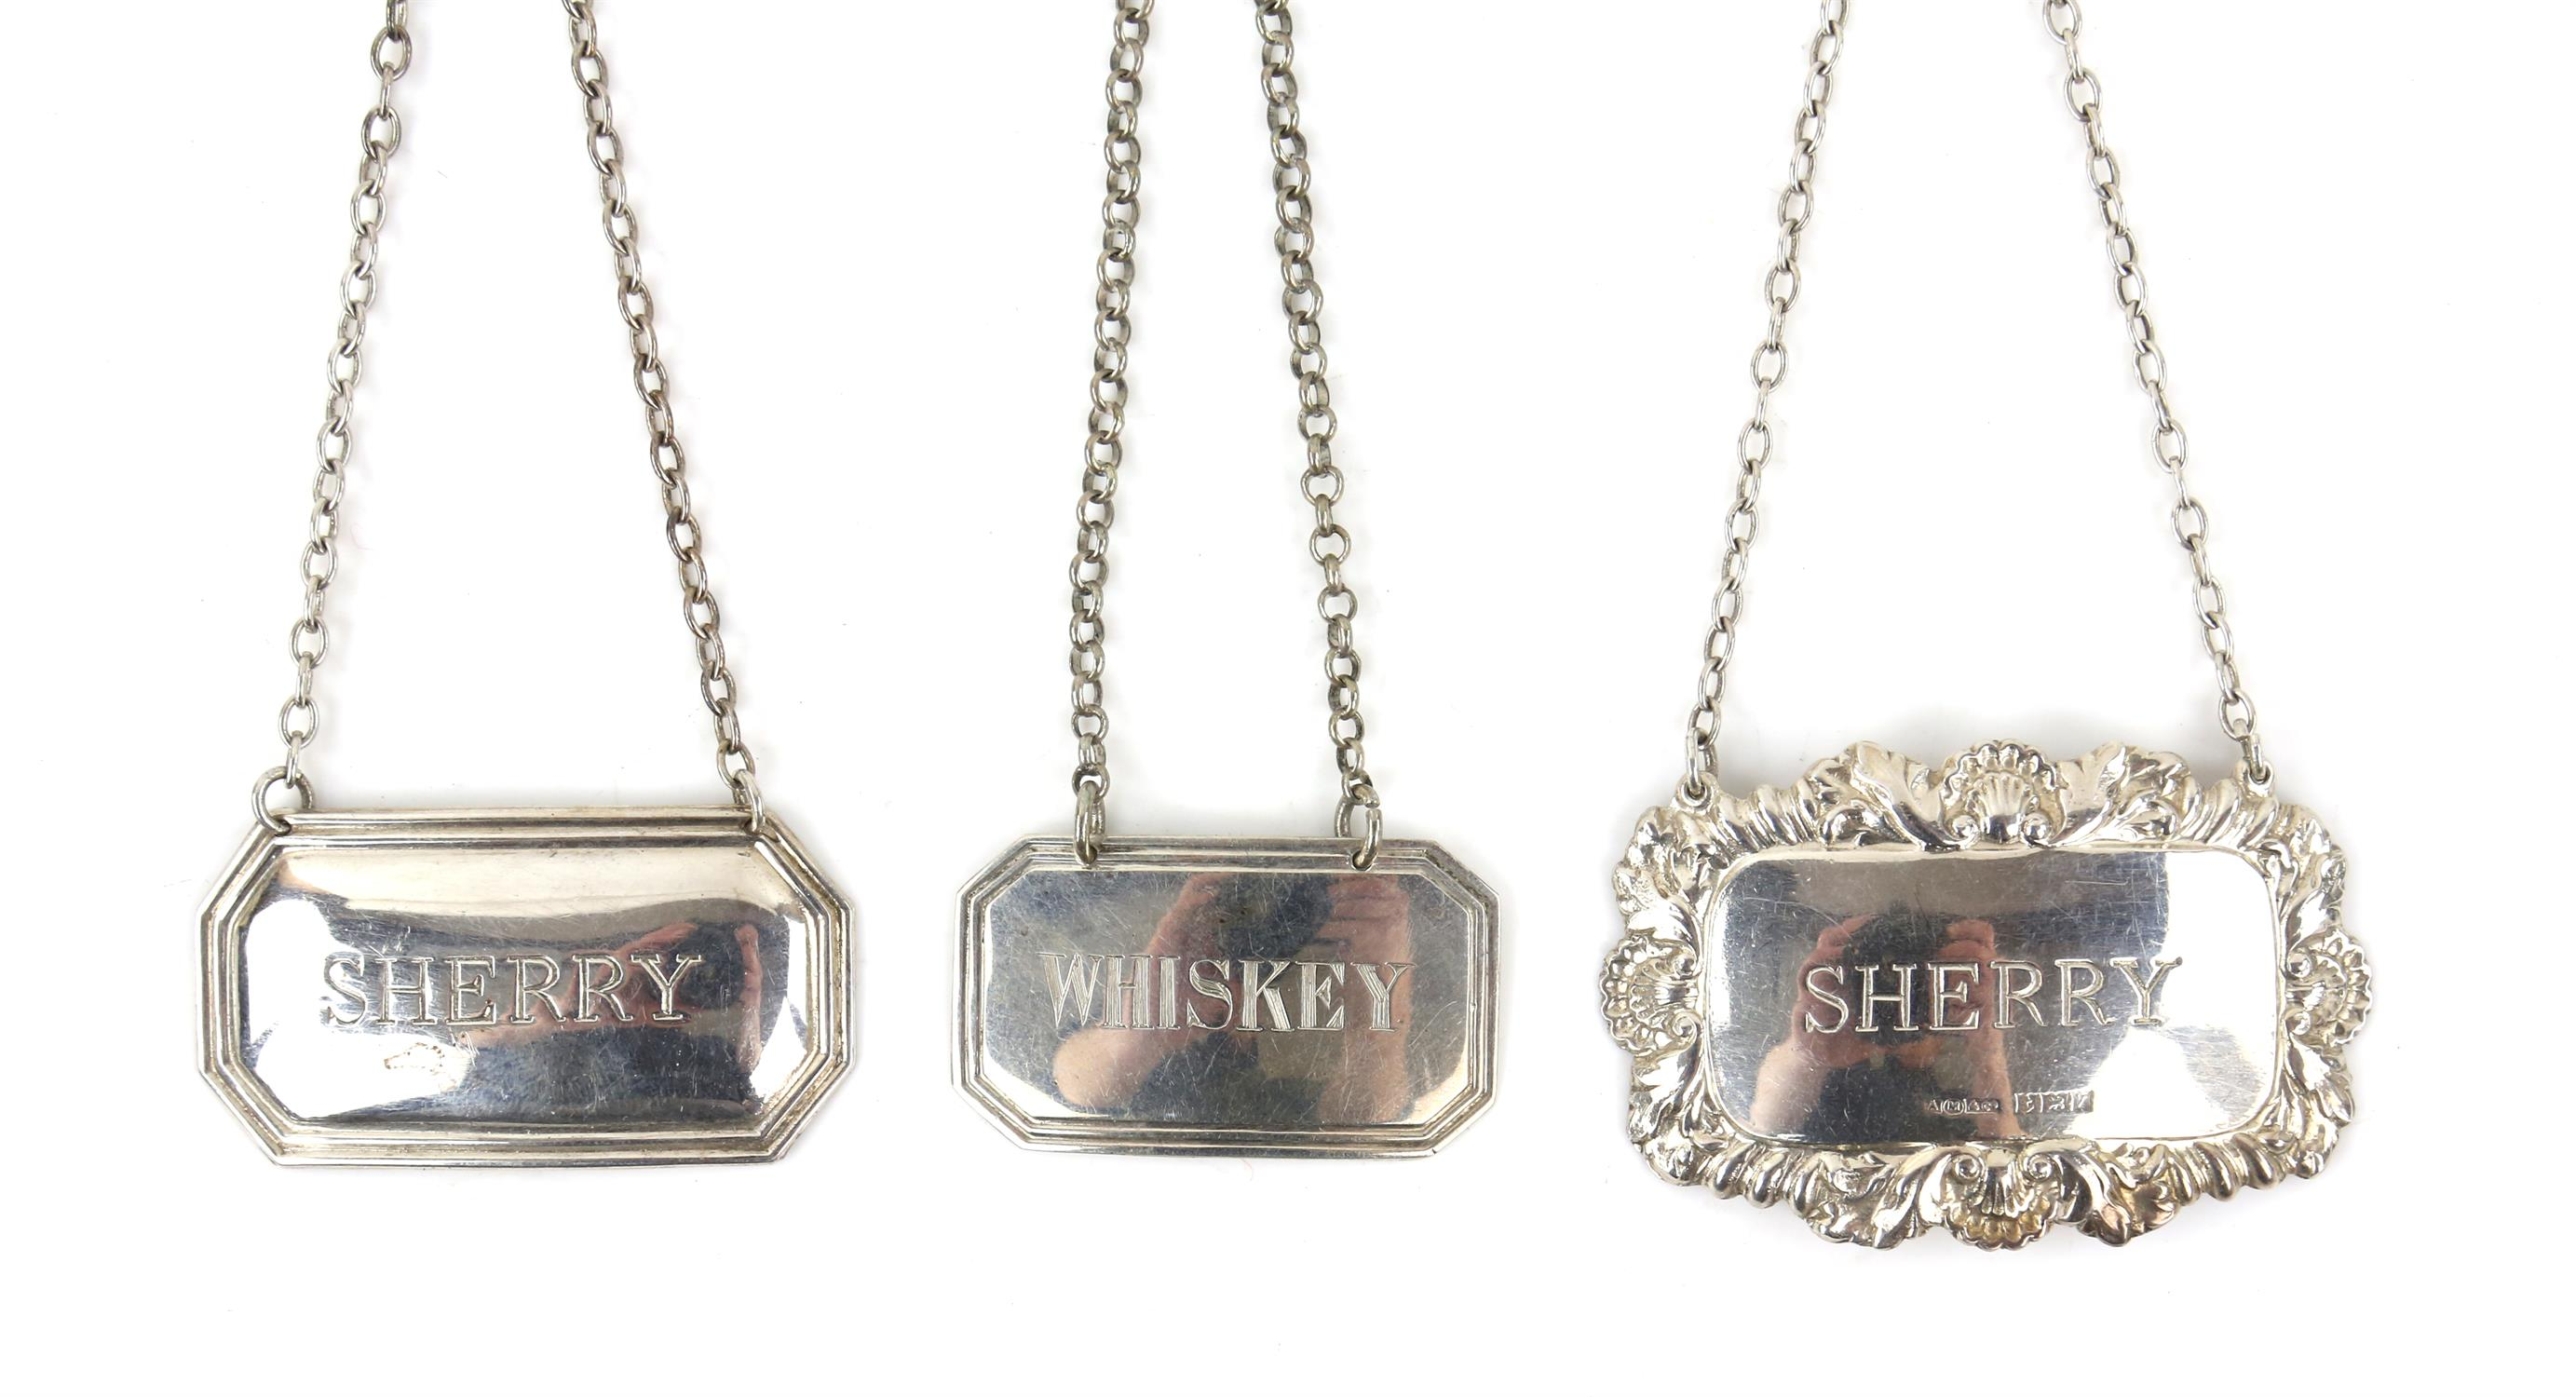 """William IV silver bottle label """"Whiskey"""" Birmingham 1832 , George Unite, two later """" Sherry"""""""